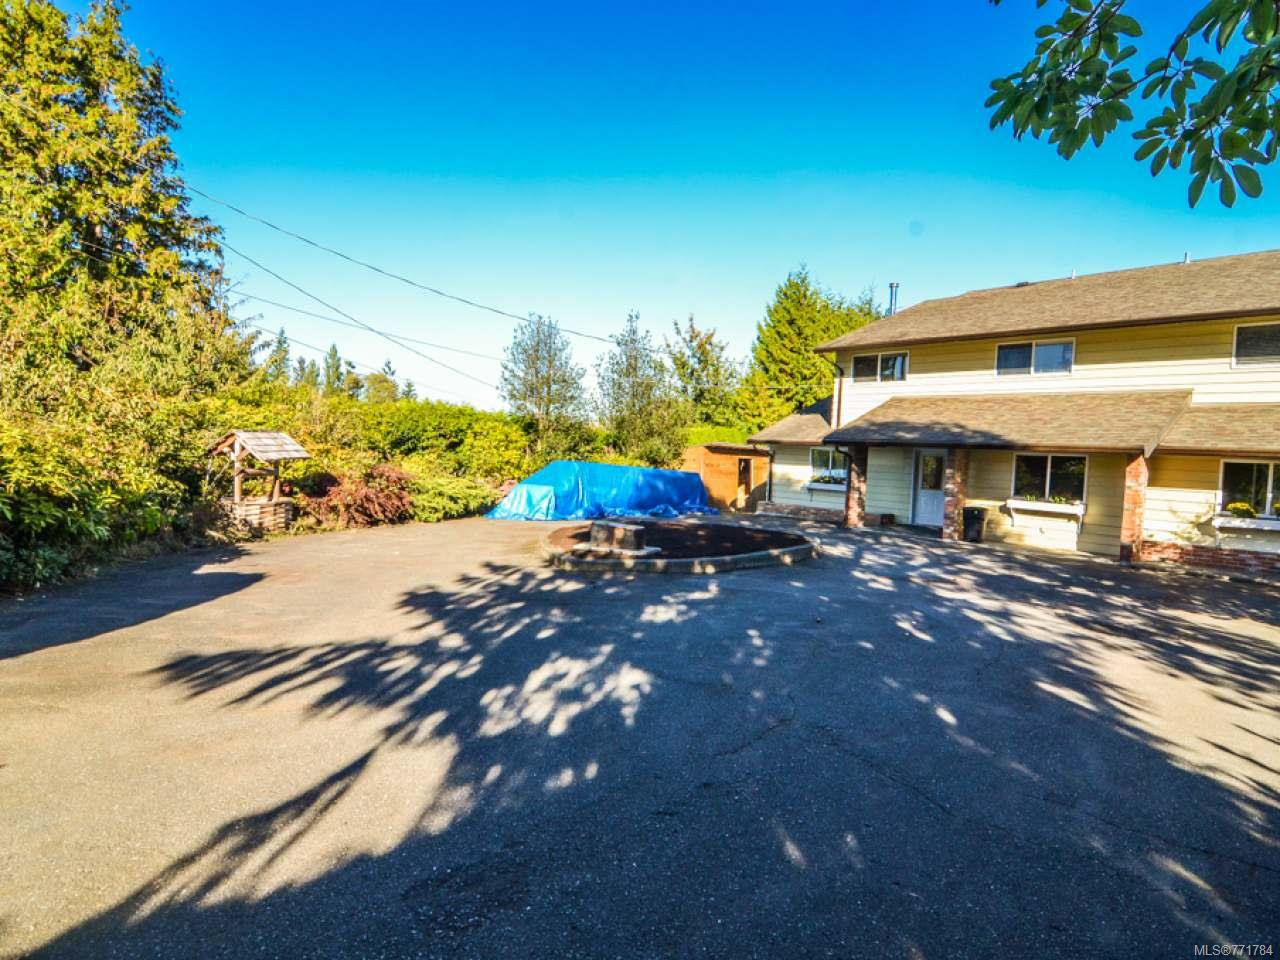 Photo 47: Photos: 3974 Dillman Rd in CAMPBELL RIVER: CR Campbell River South House for sale (Campbell River)  : MLS®# 771784